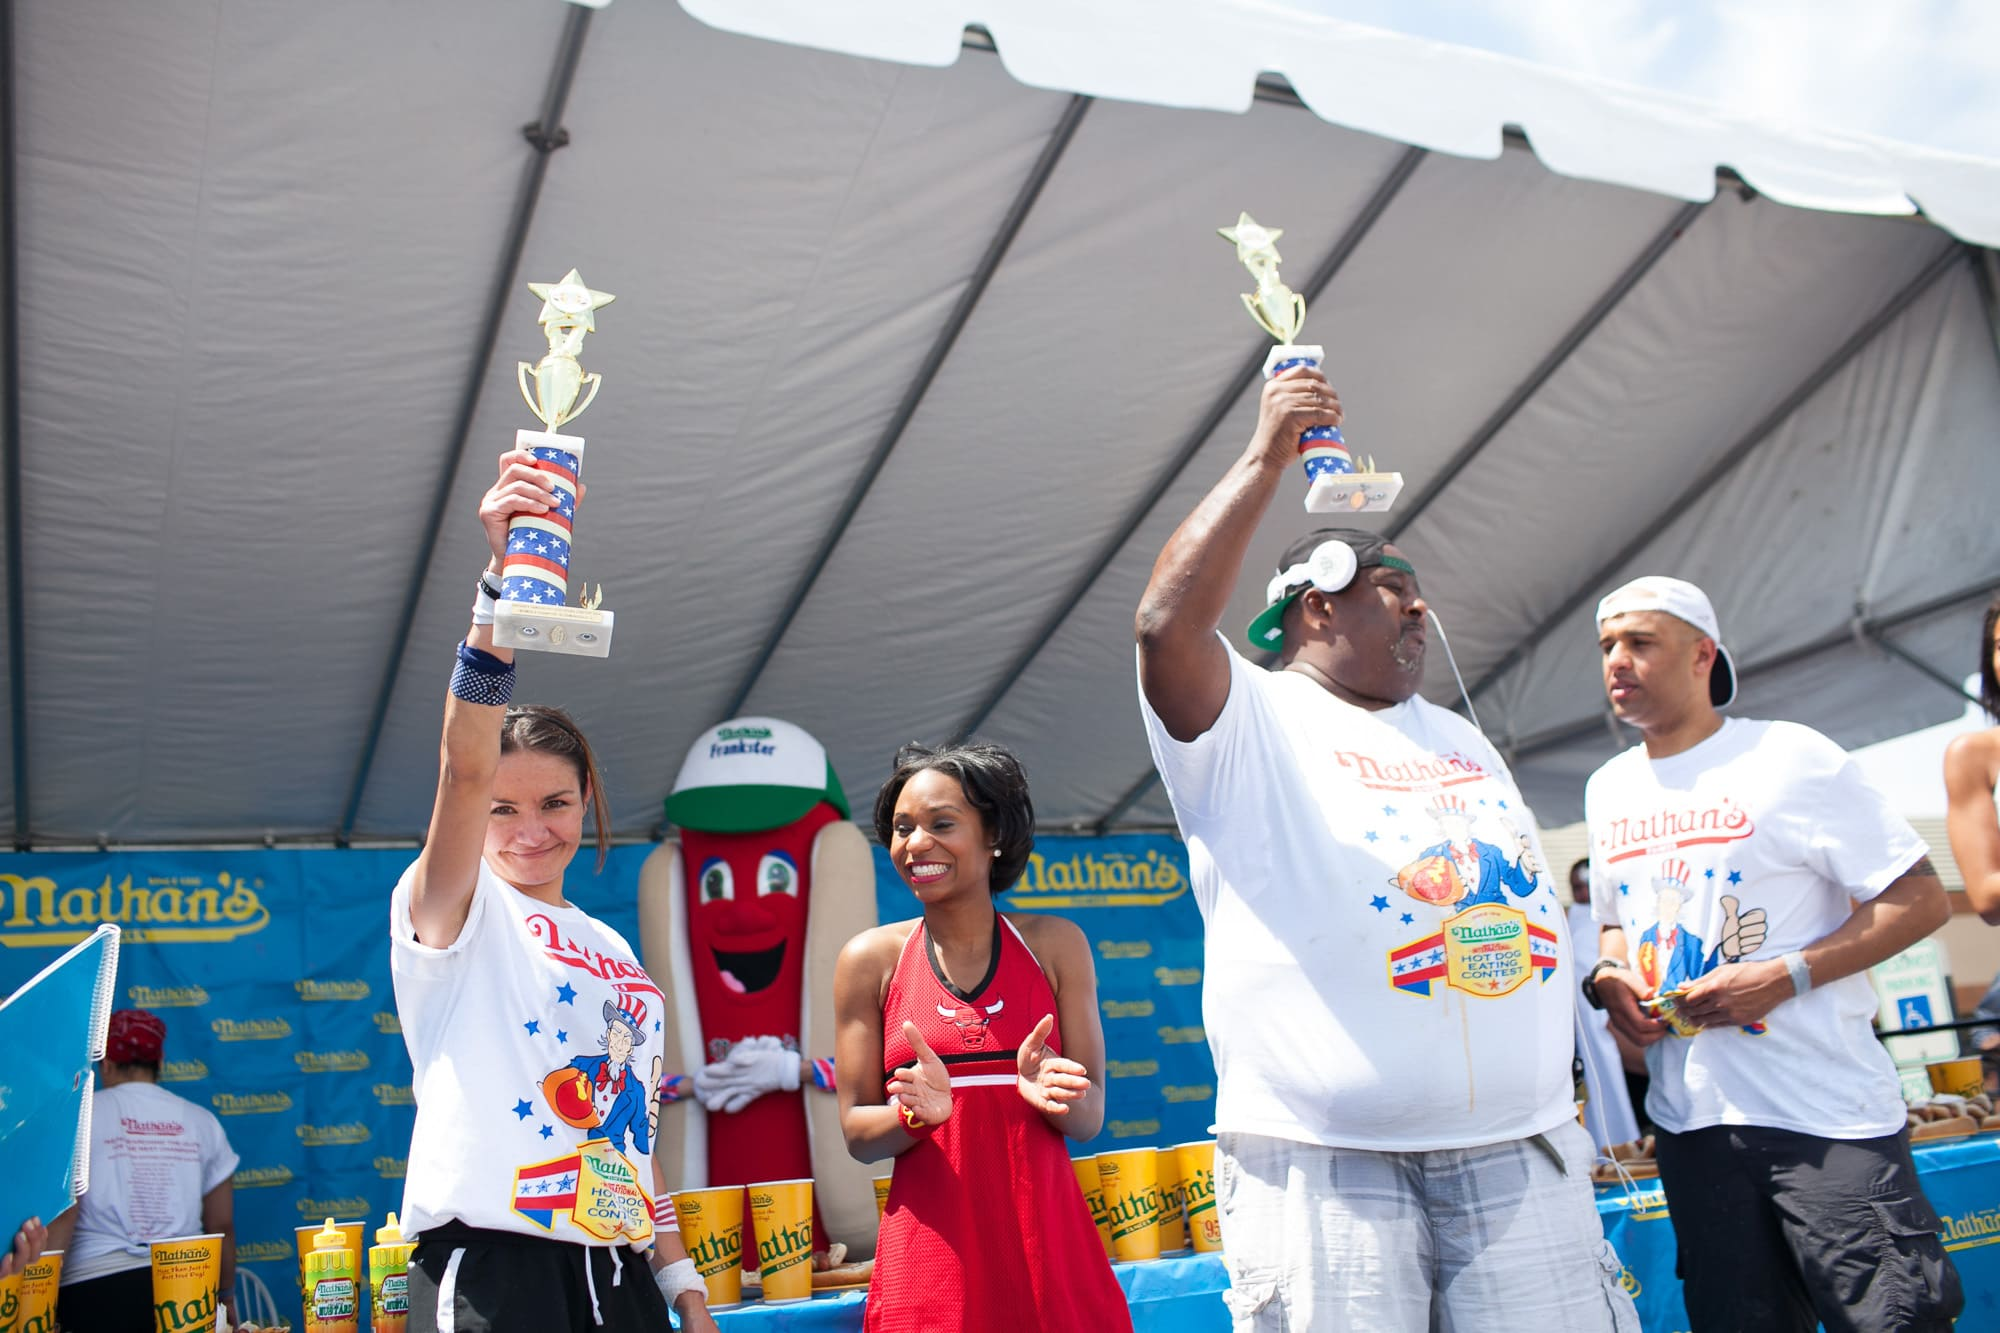 Michelle Lesco and Eric Badlands Booker win the hot dog eating contest at the Bloomingdale, Illinois, Kmart